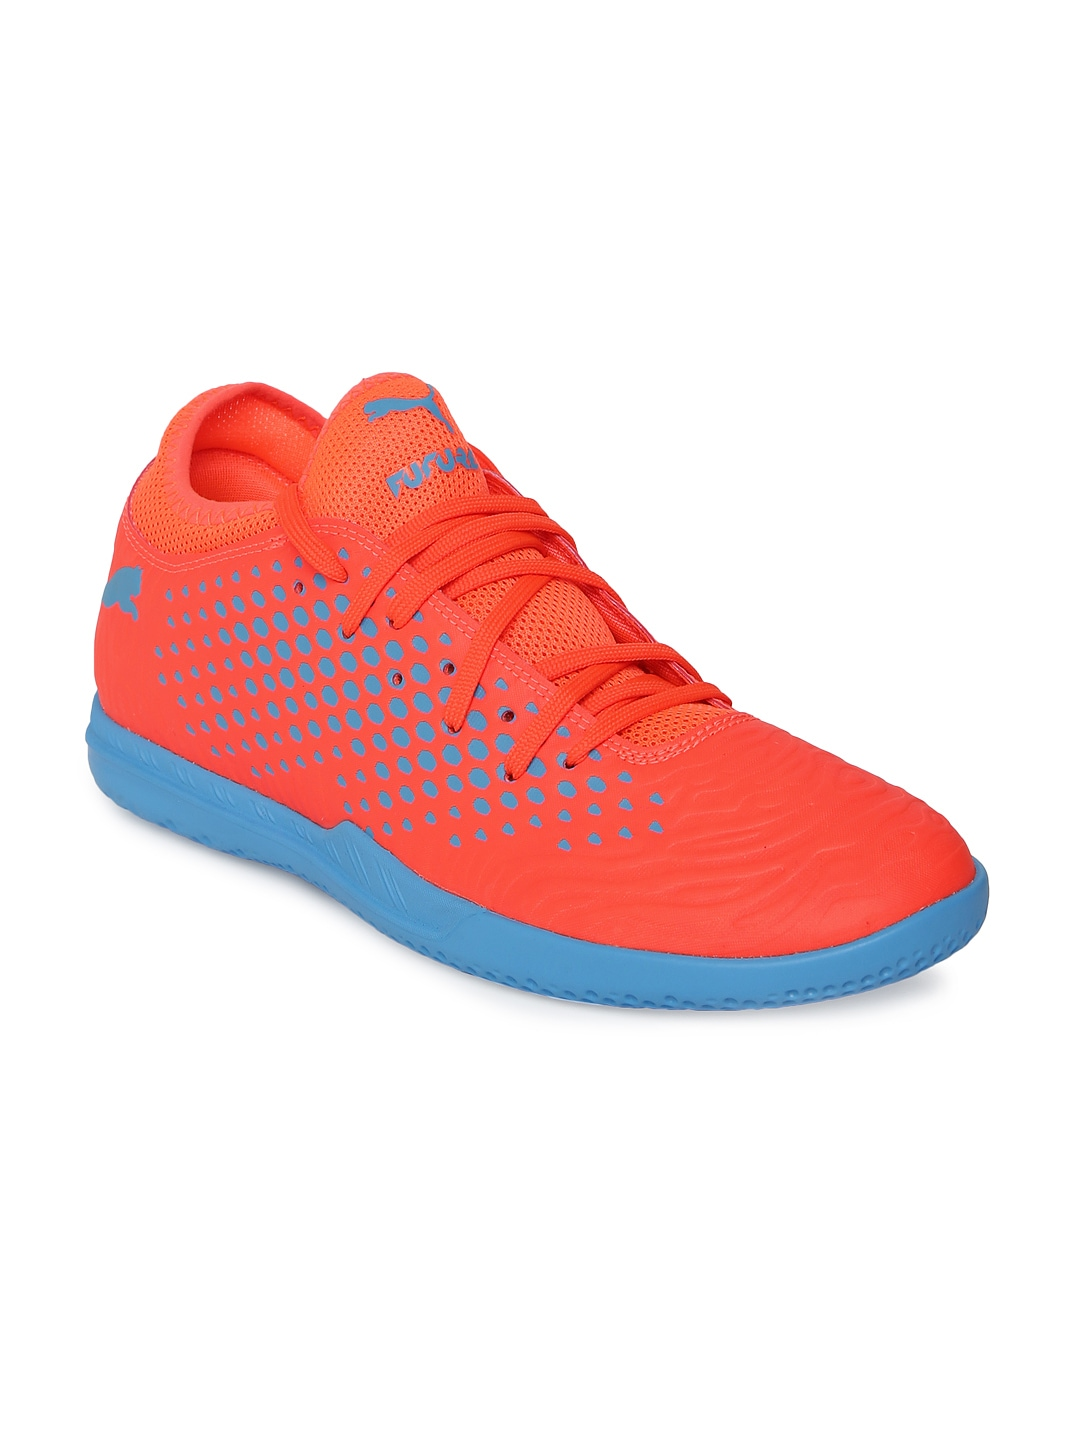 db95dafeb7b7 Sports Shoes for Men - Buy Men Sports Shoes Online in India - Myntra